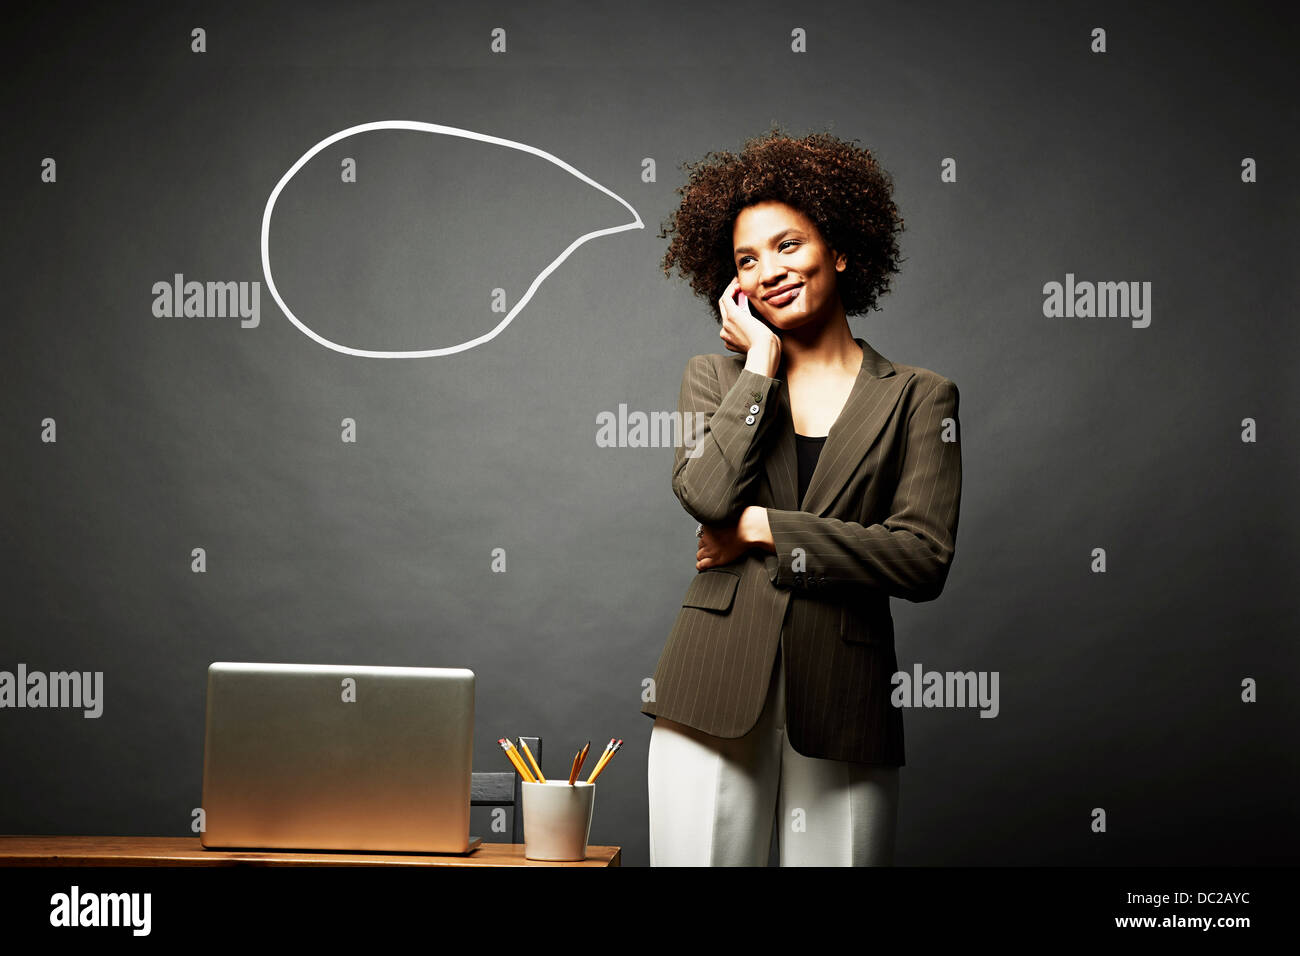 Woman smiling and speechless - Stock Image